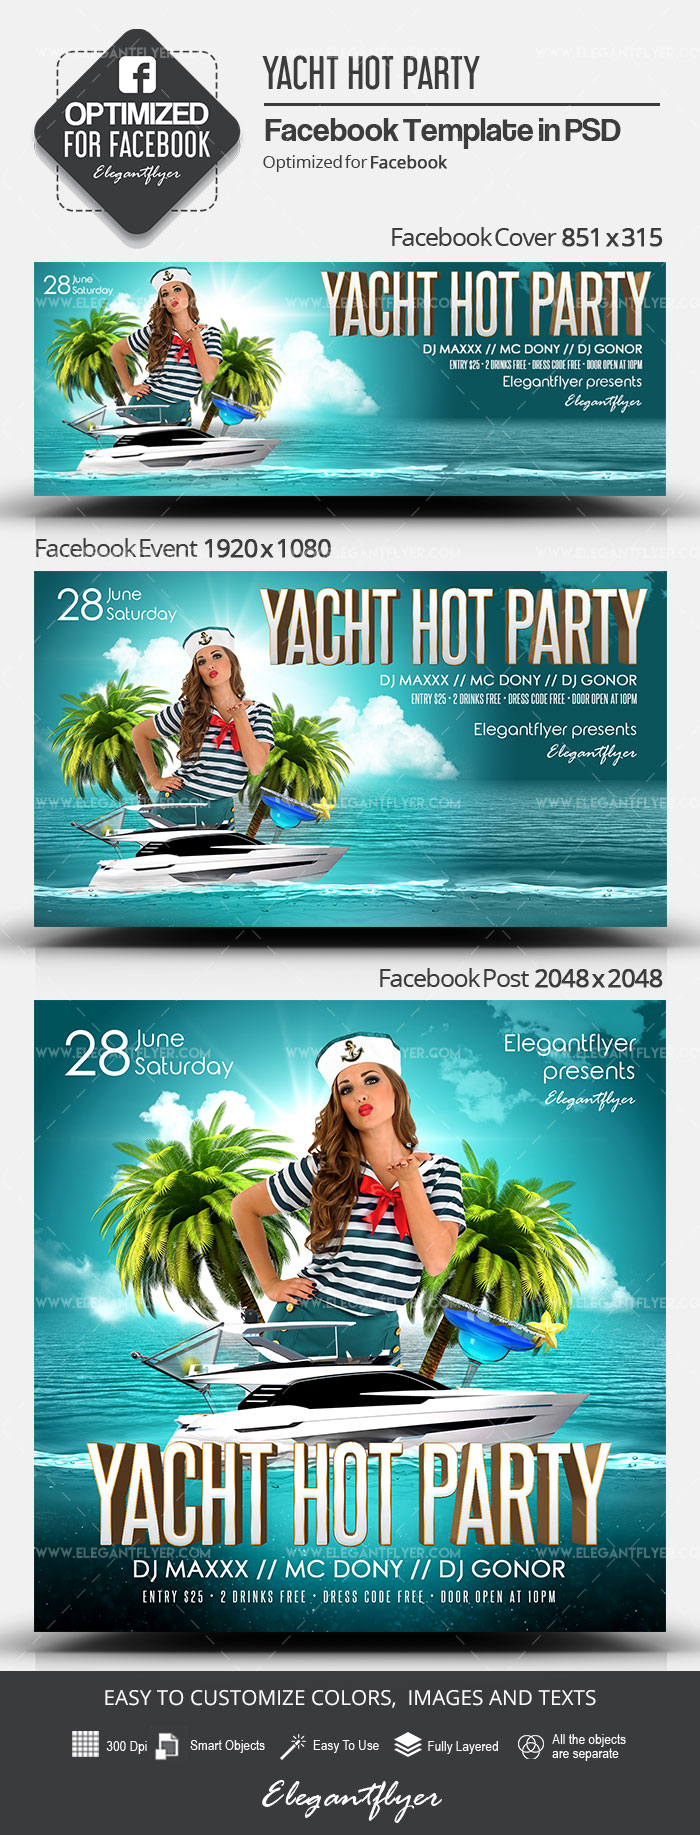 Yacht Hot Party – Facebook Cover Template in PSD + Post + Event cover